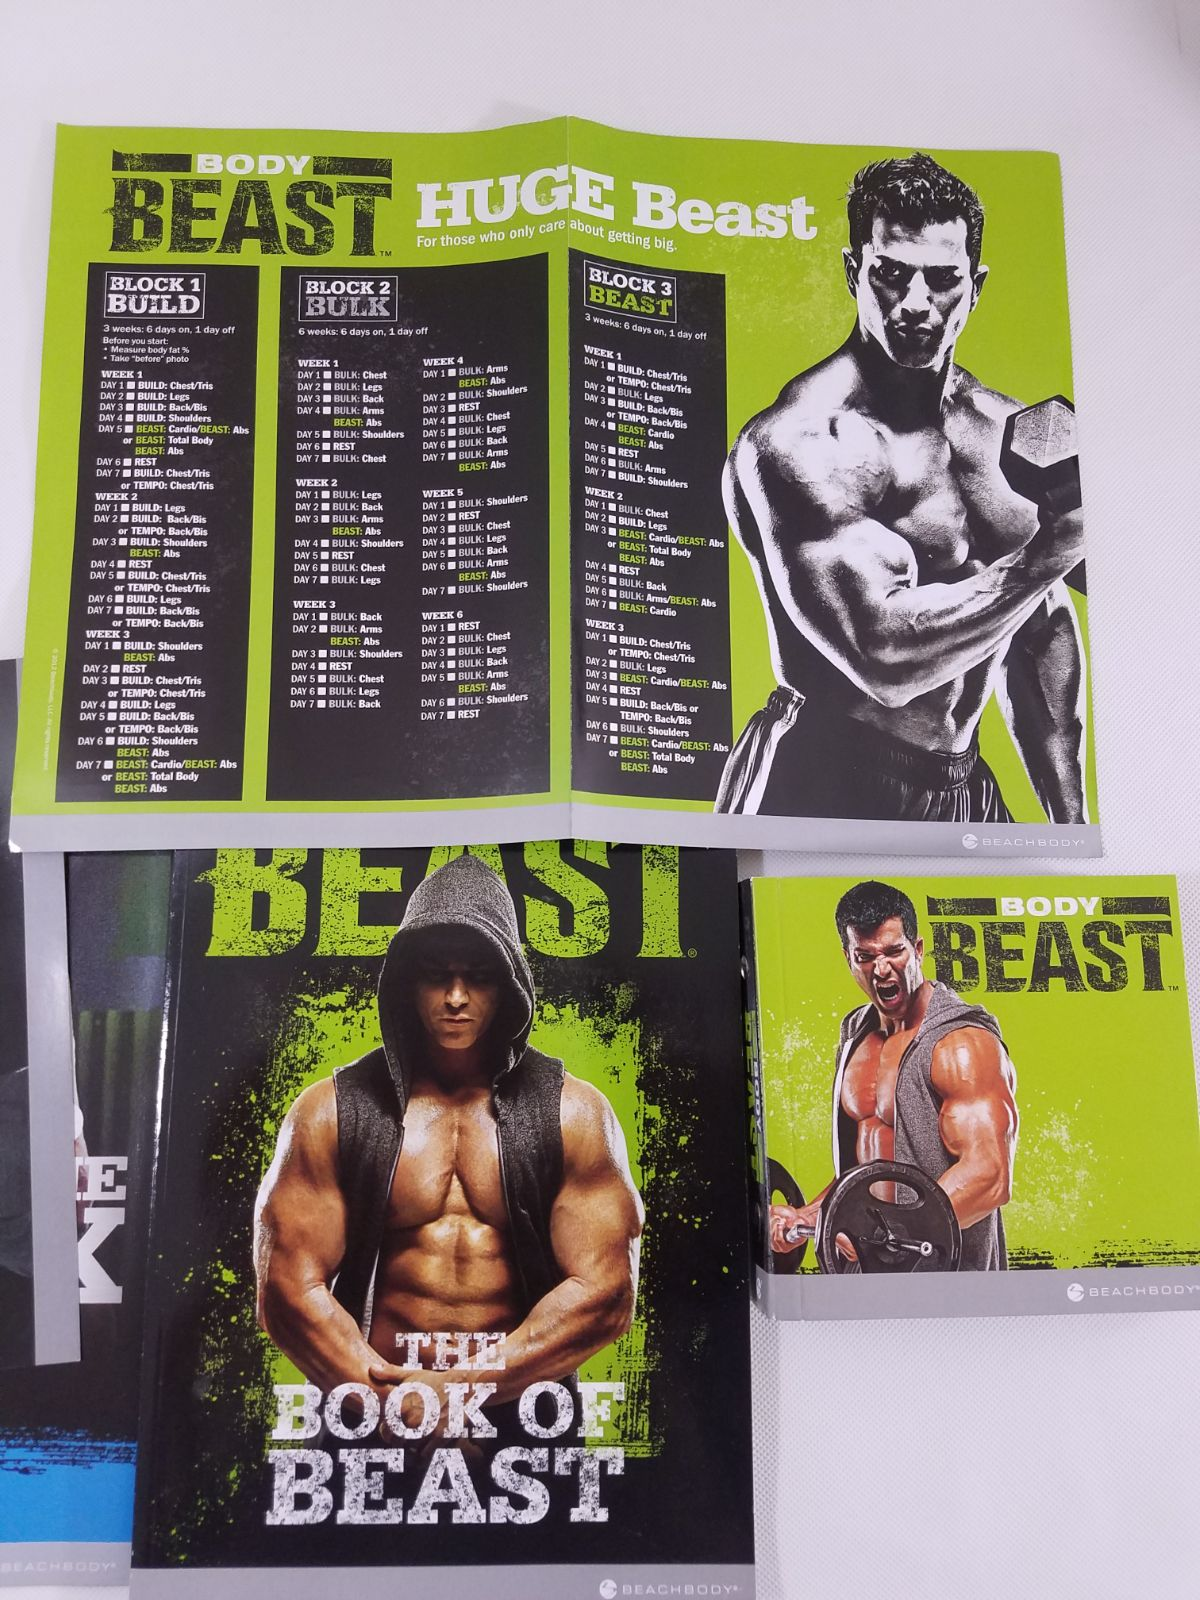 Body Beast Workout 7 DVDs and Book